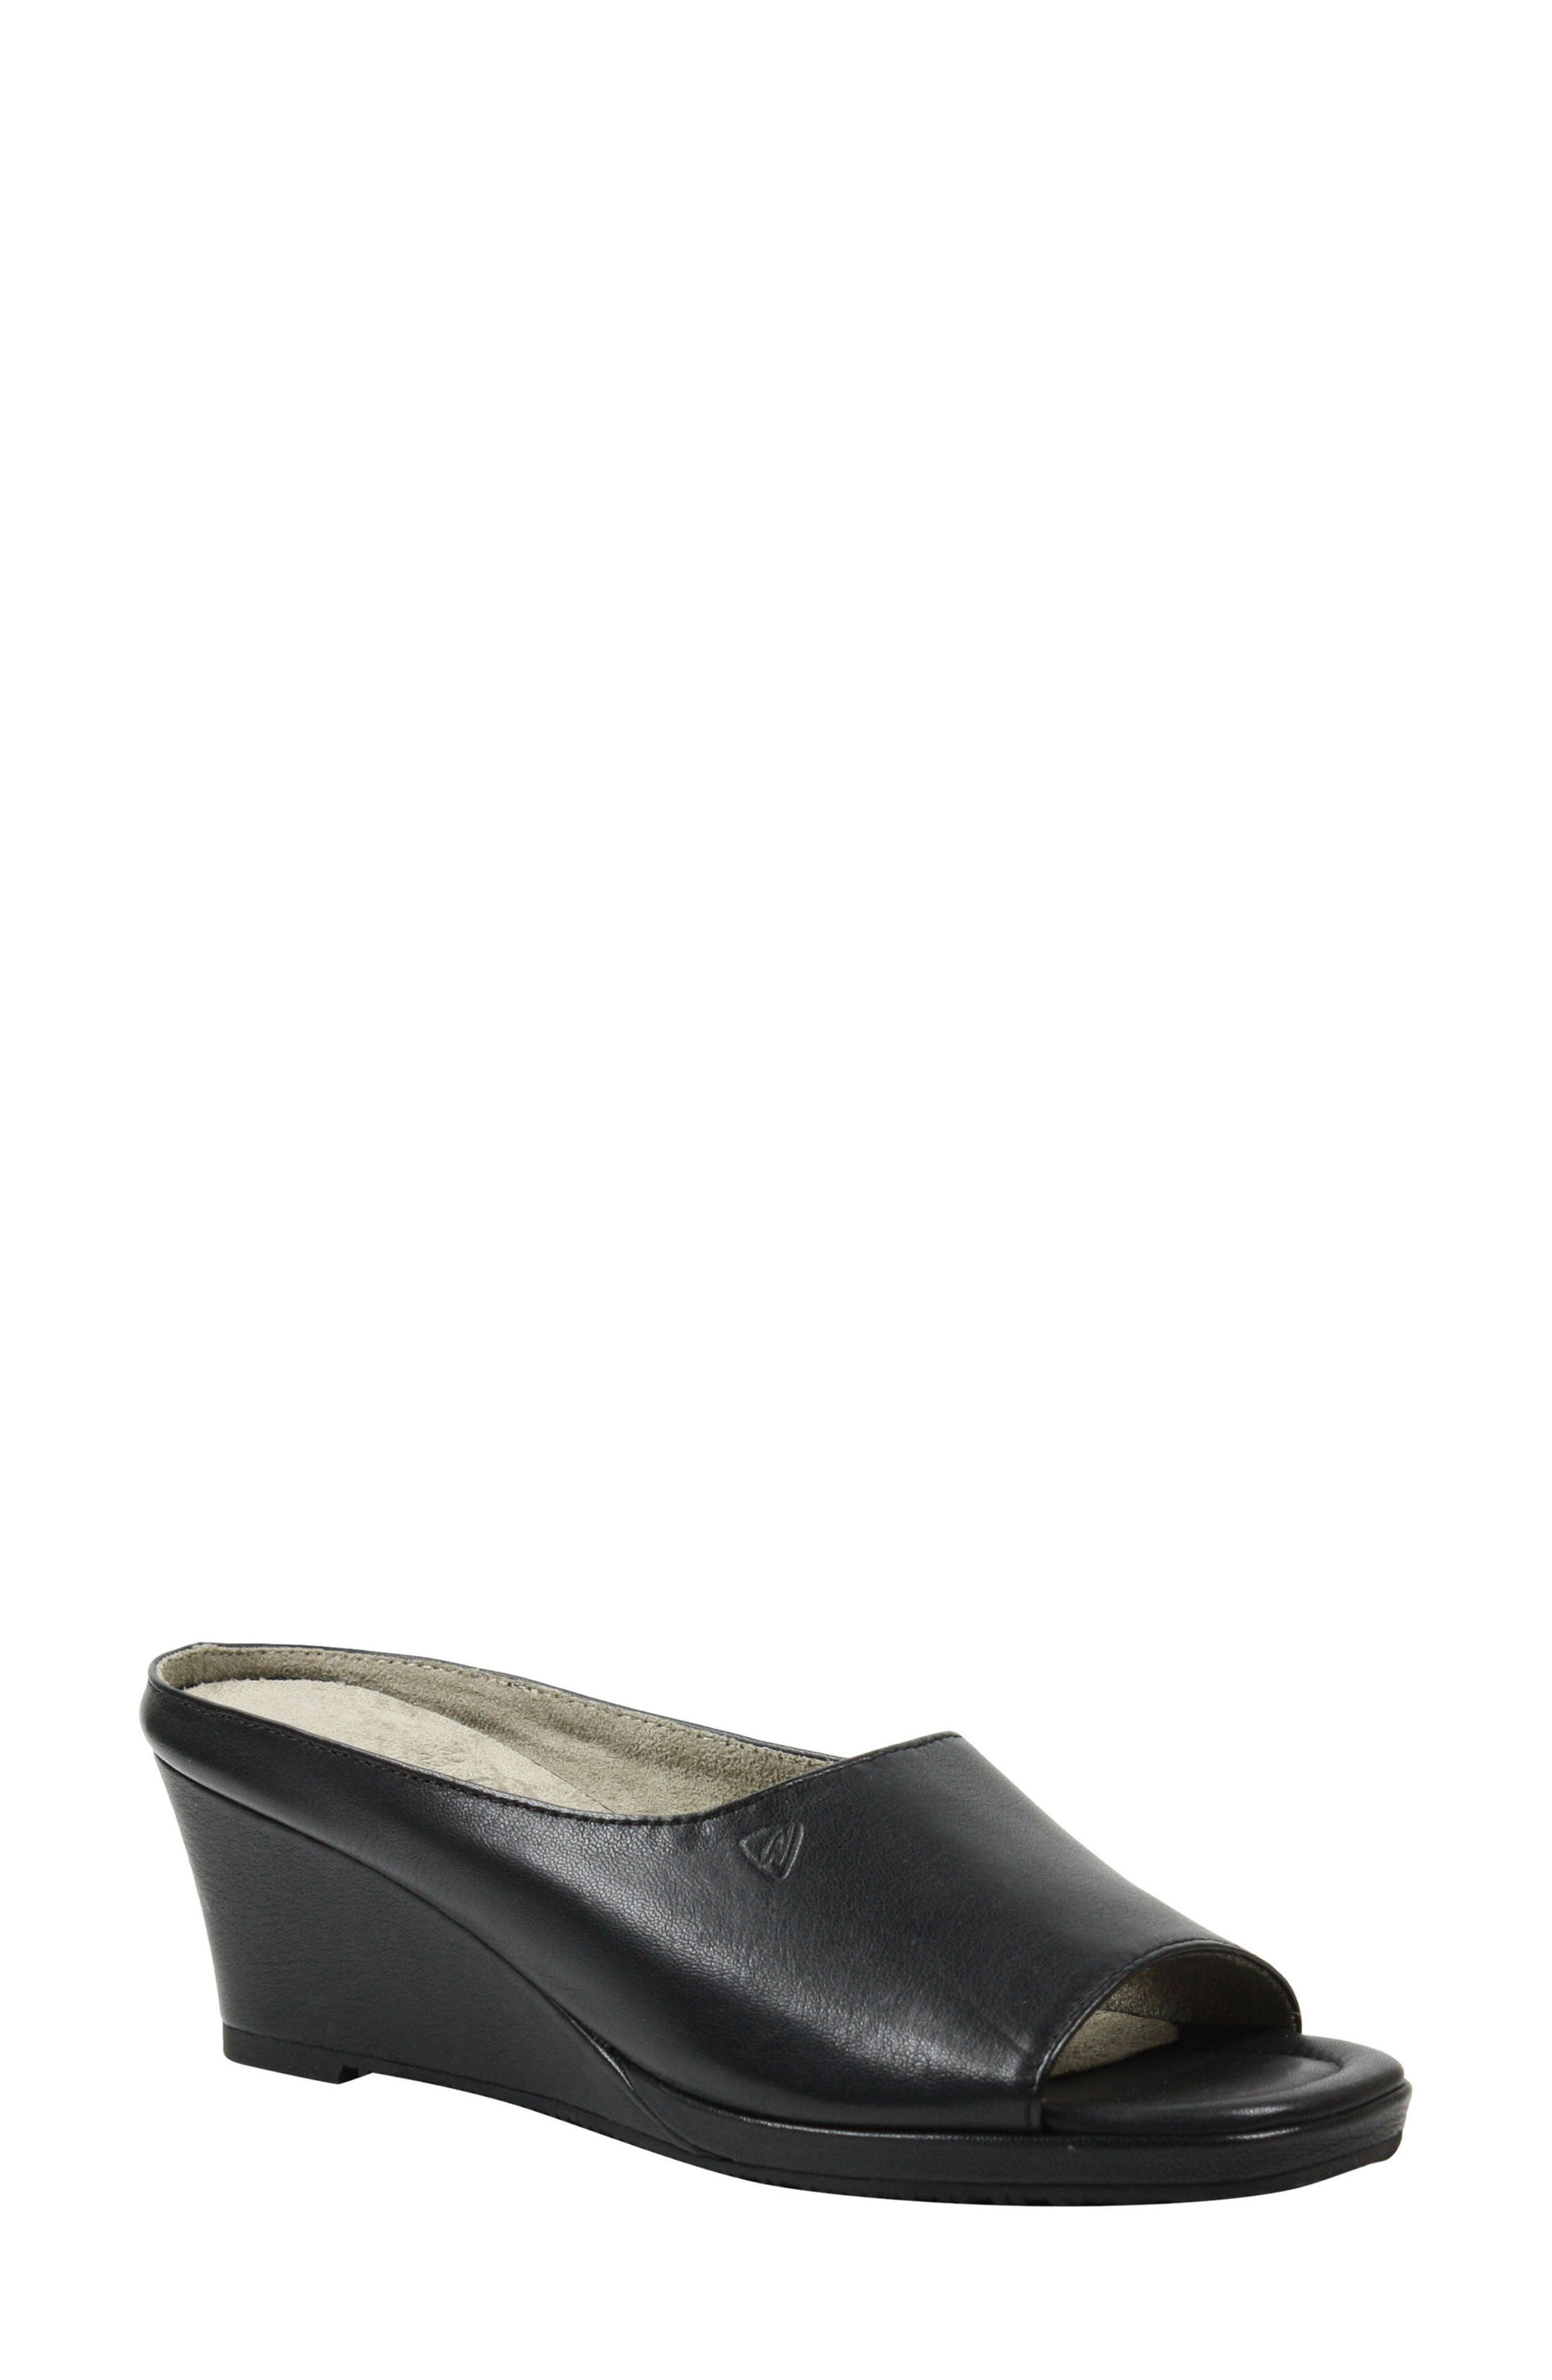 Abrielle Wedge Mule,                         Main,                         color, BLACK LEATHER